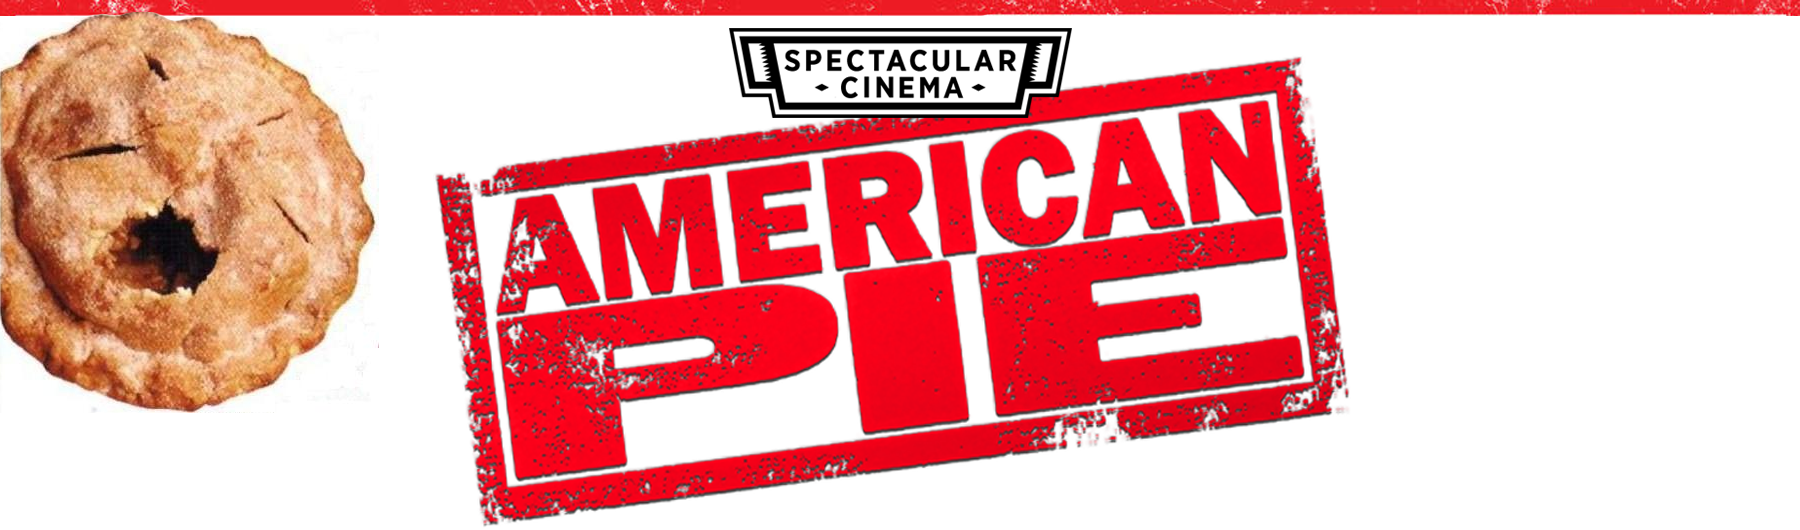 SPECTACULAR CINEMA PRESENTS: American Pie